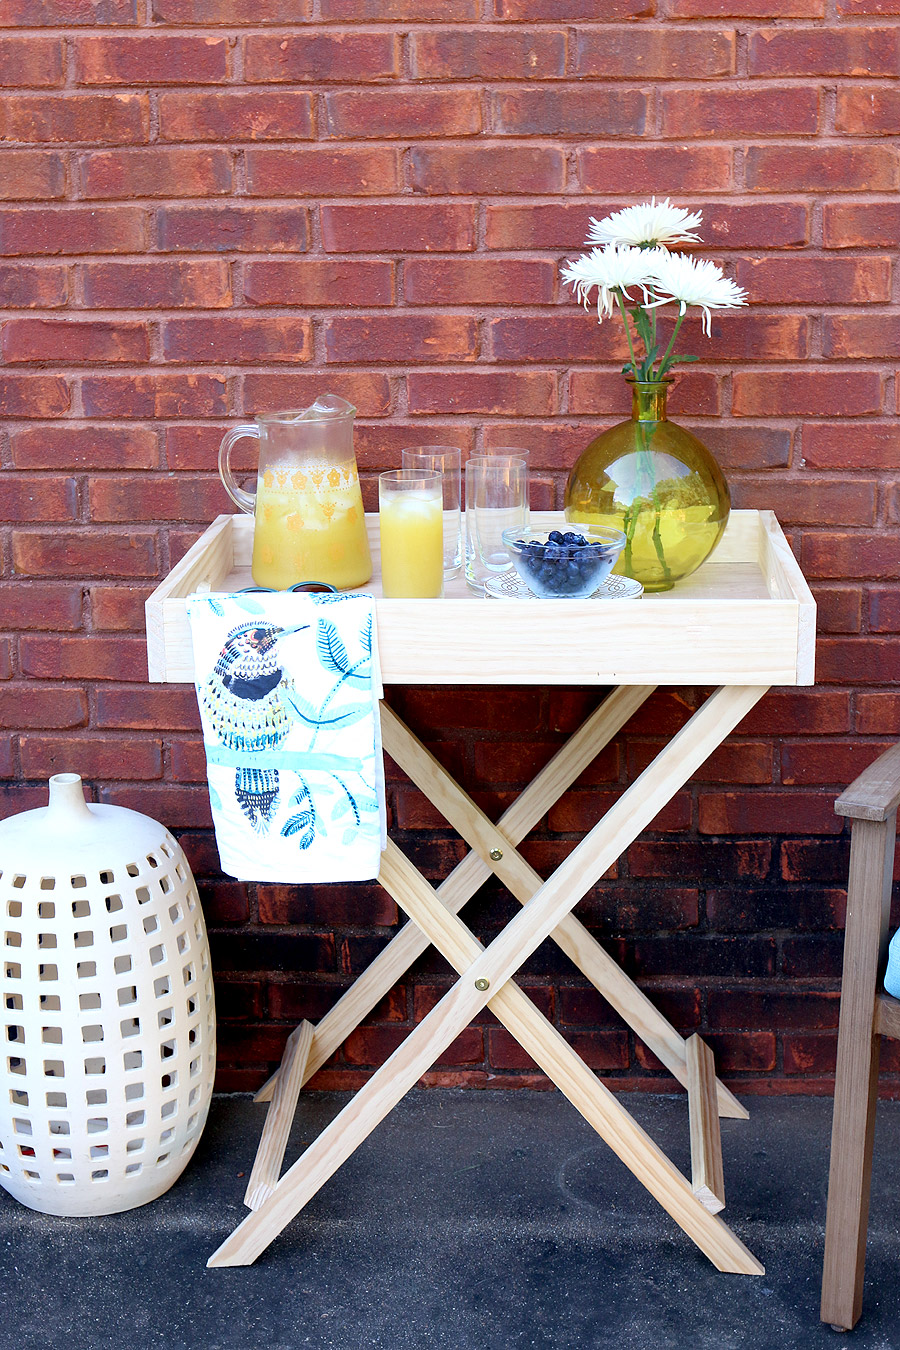 Tutorial on how to build a DIY West Elm-inspired Butler Stand